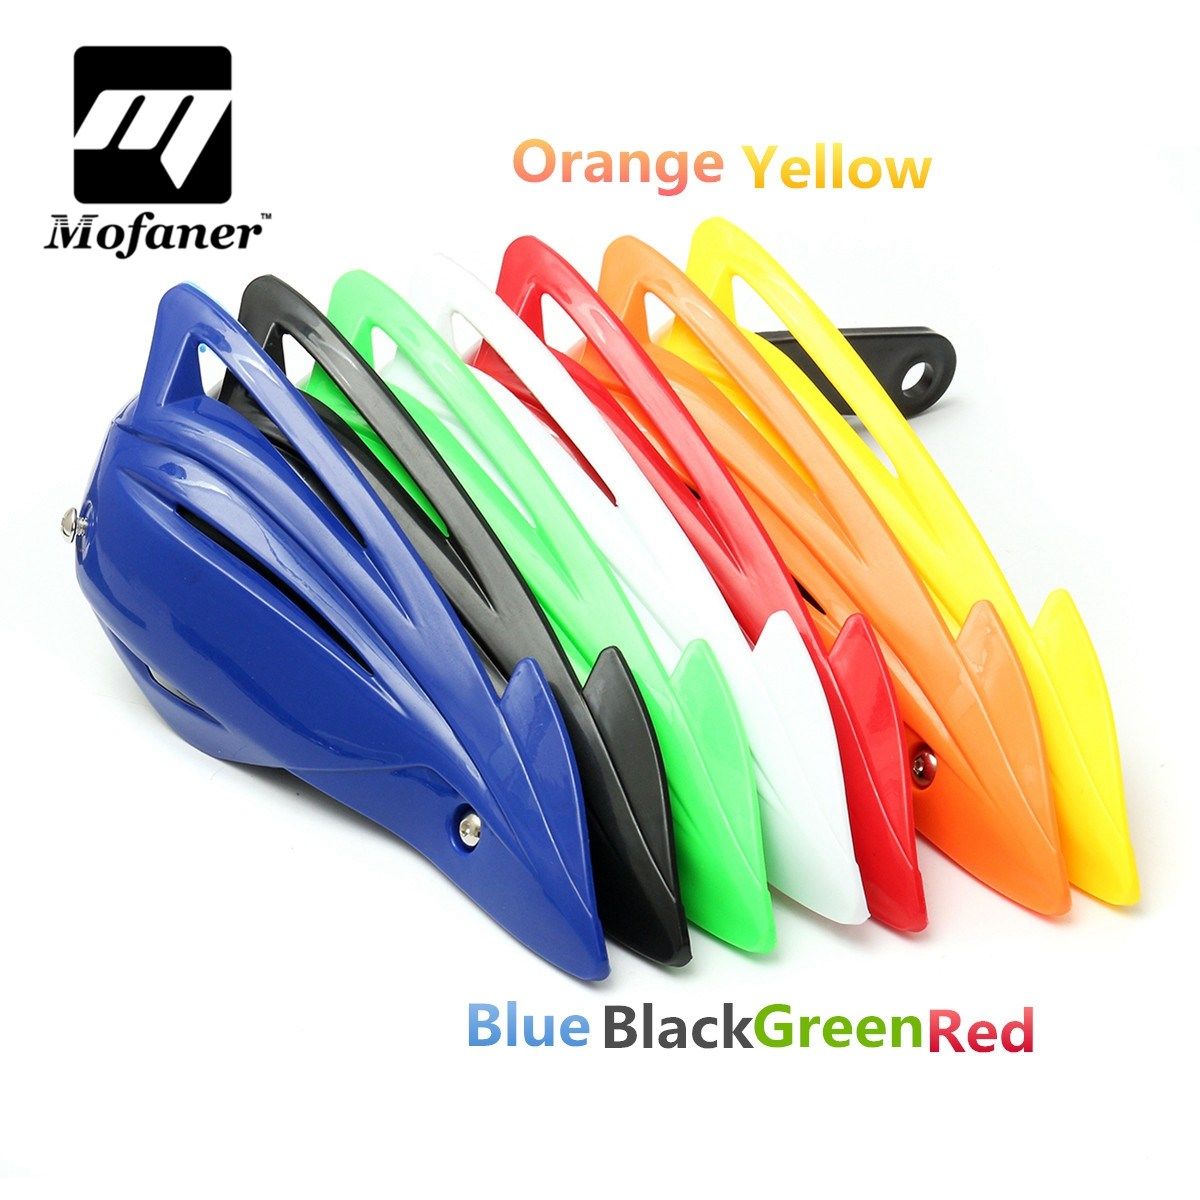 Motorcycle Handguards Hand Guards Brush Bar Fit Motocross ATV Dirt Bike atv motorcycle wind shield handle hand guards motocross transparent handguards for honda cbf600 sa cbf1000 a cb1100 gio nc750